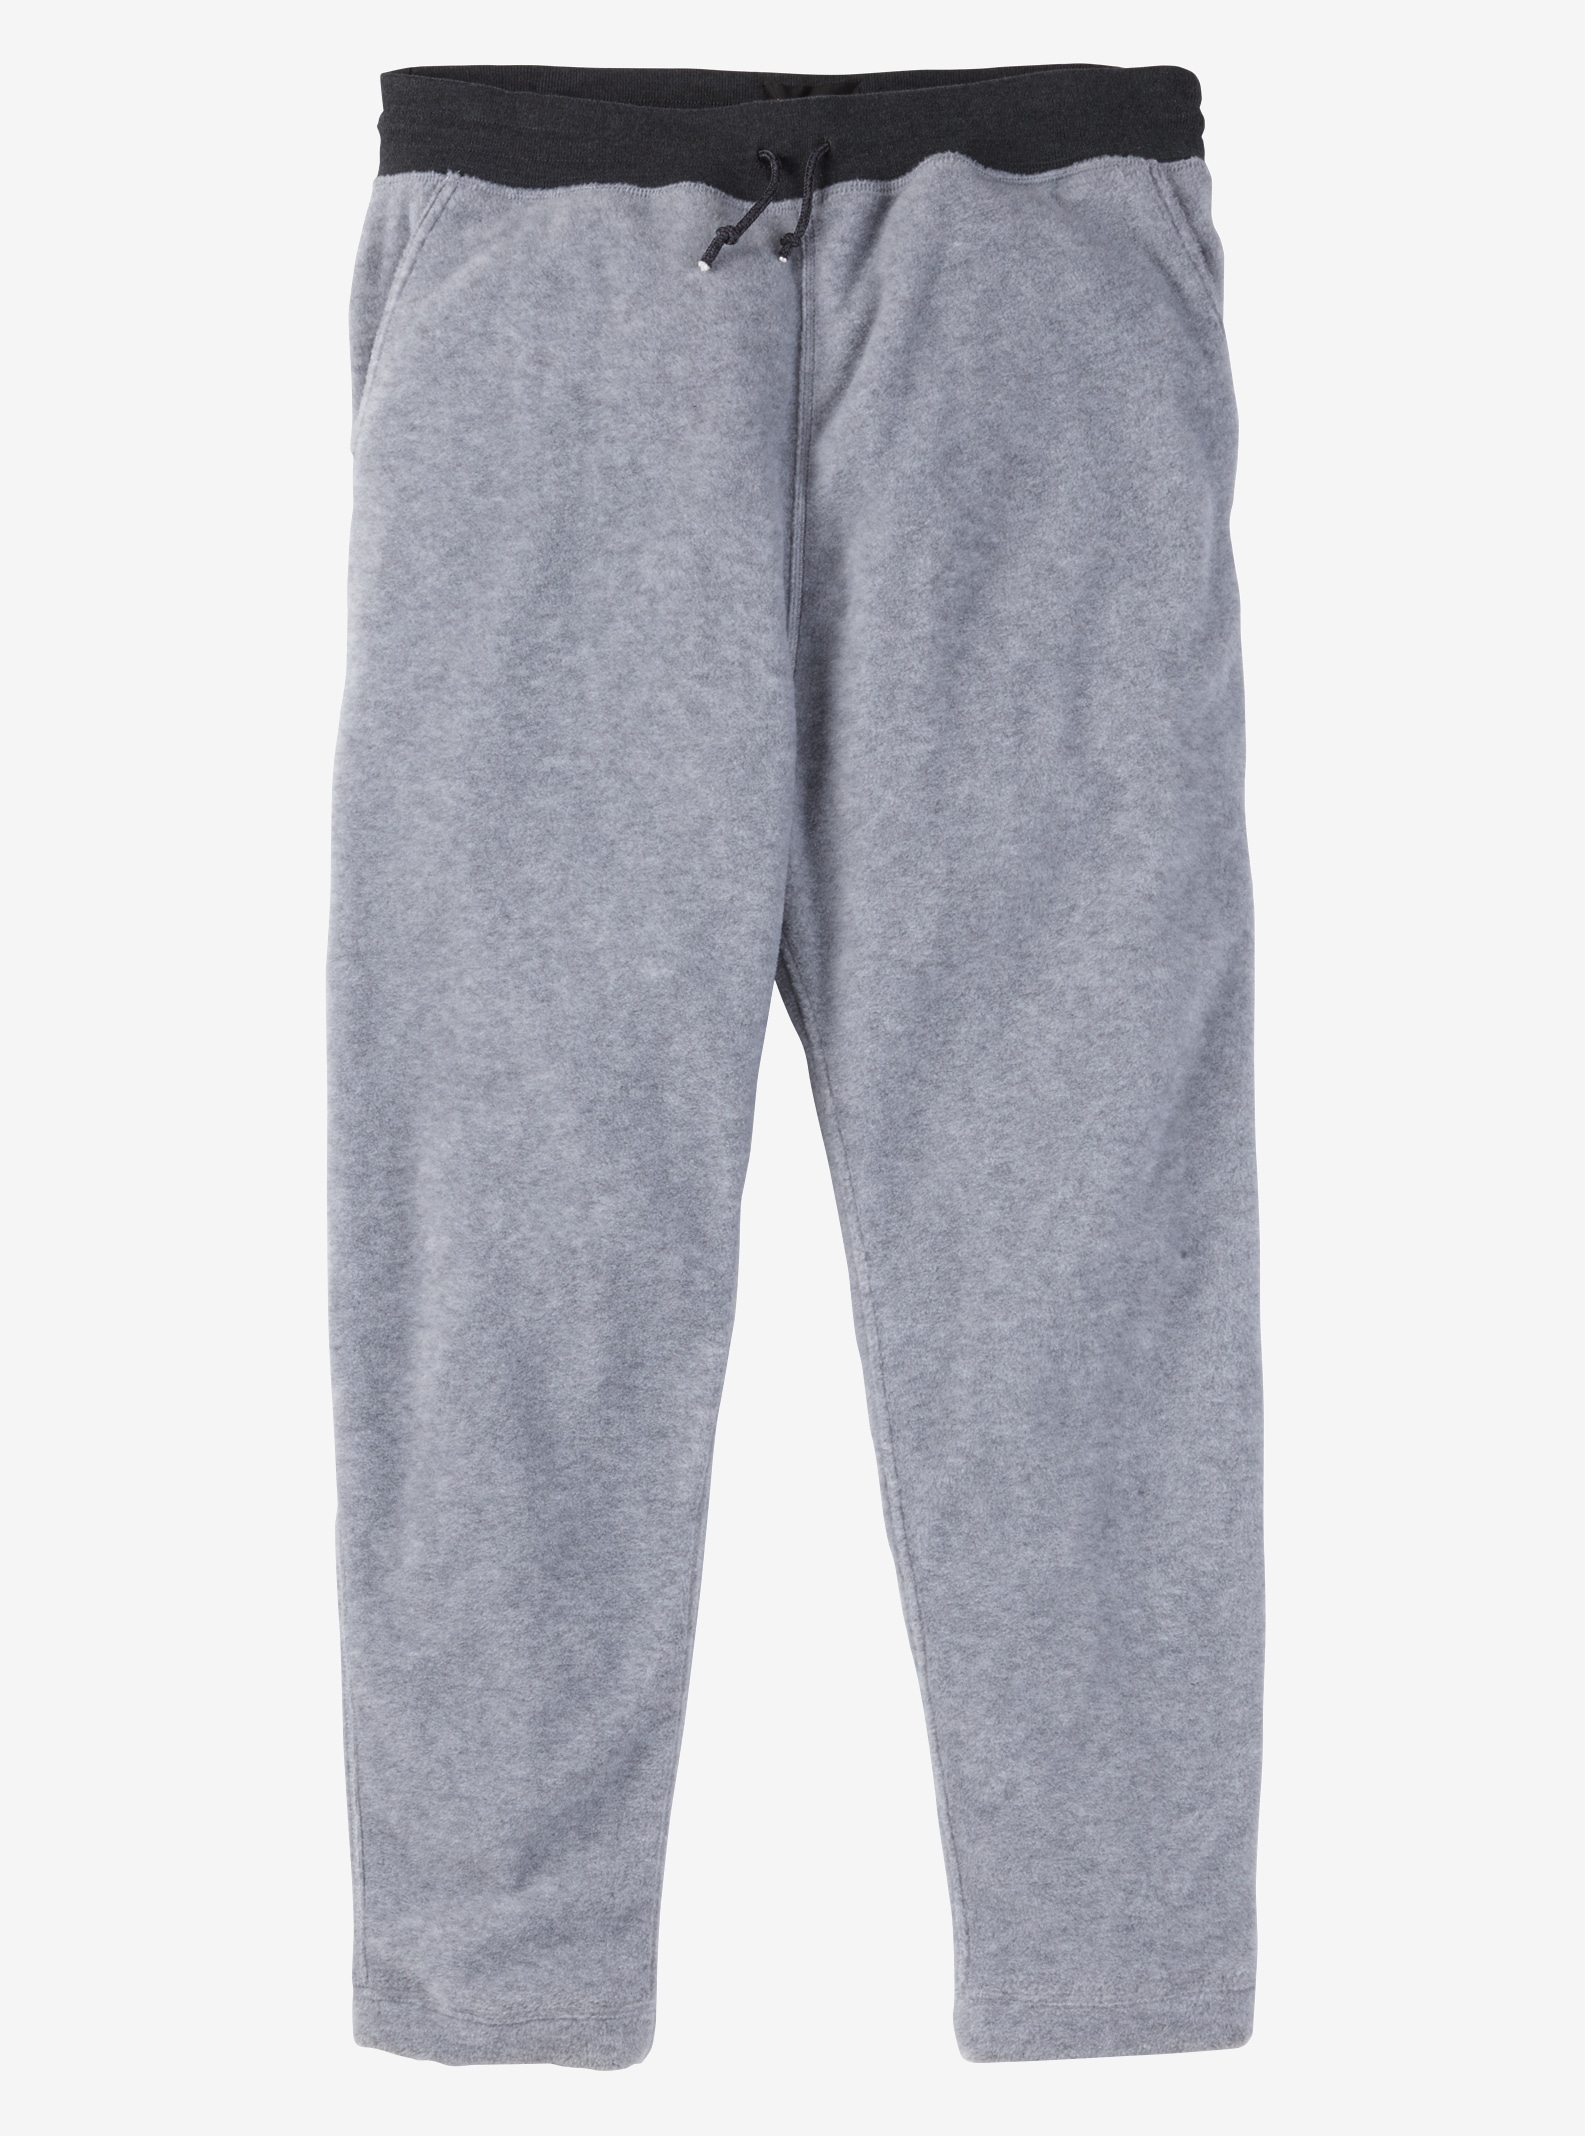 Men's Burton Hearth Fleece Pant shown in Shade Heather